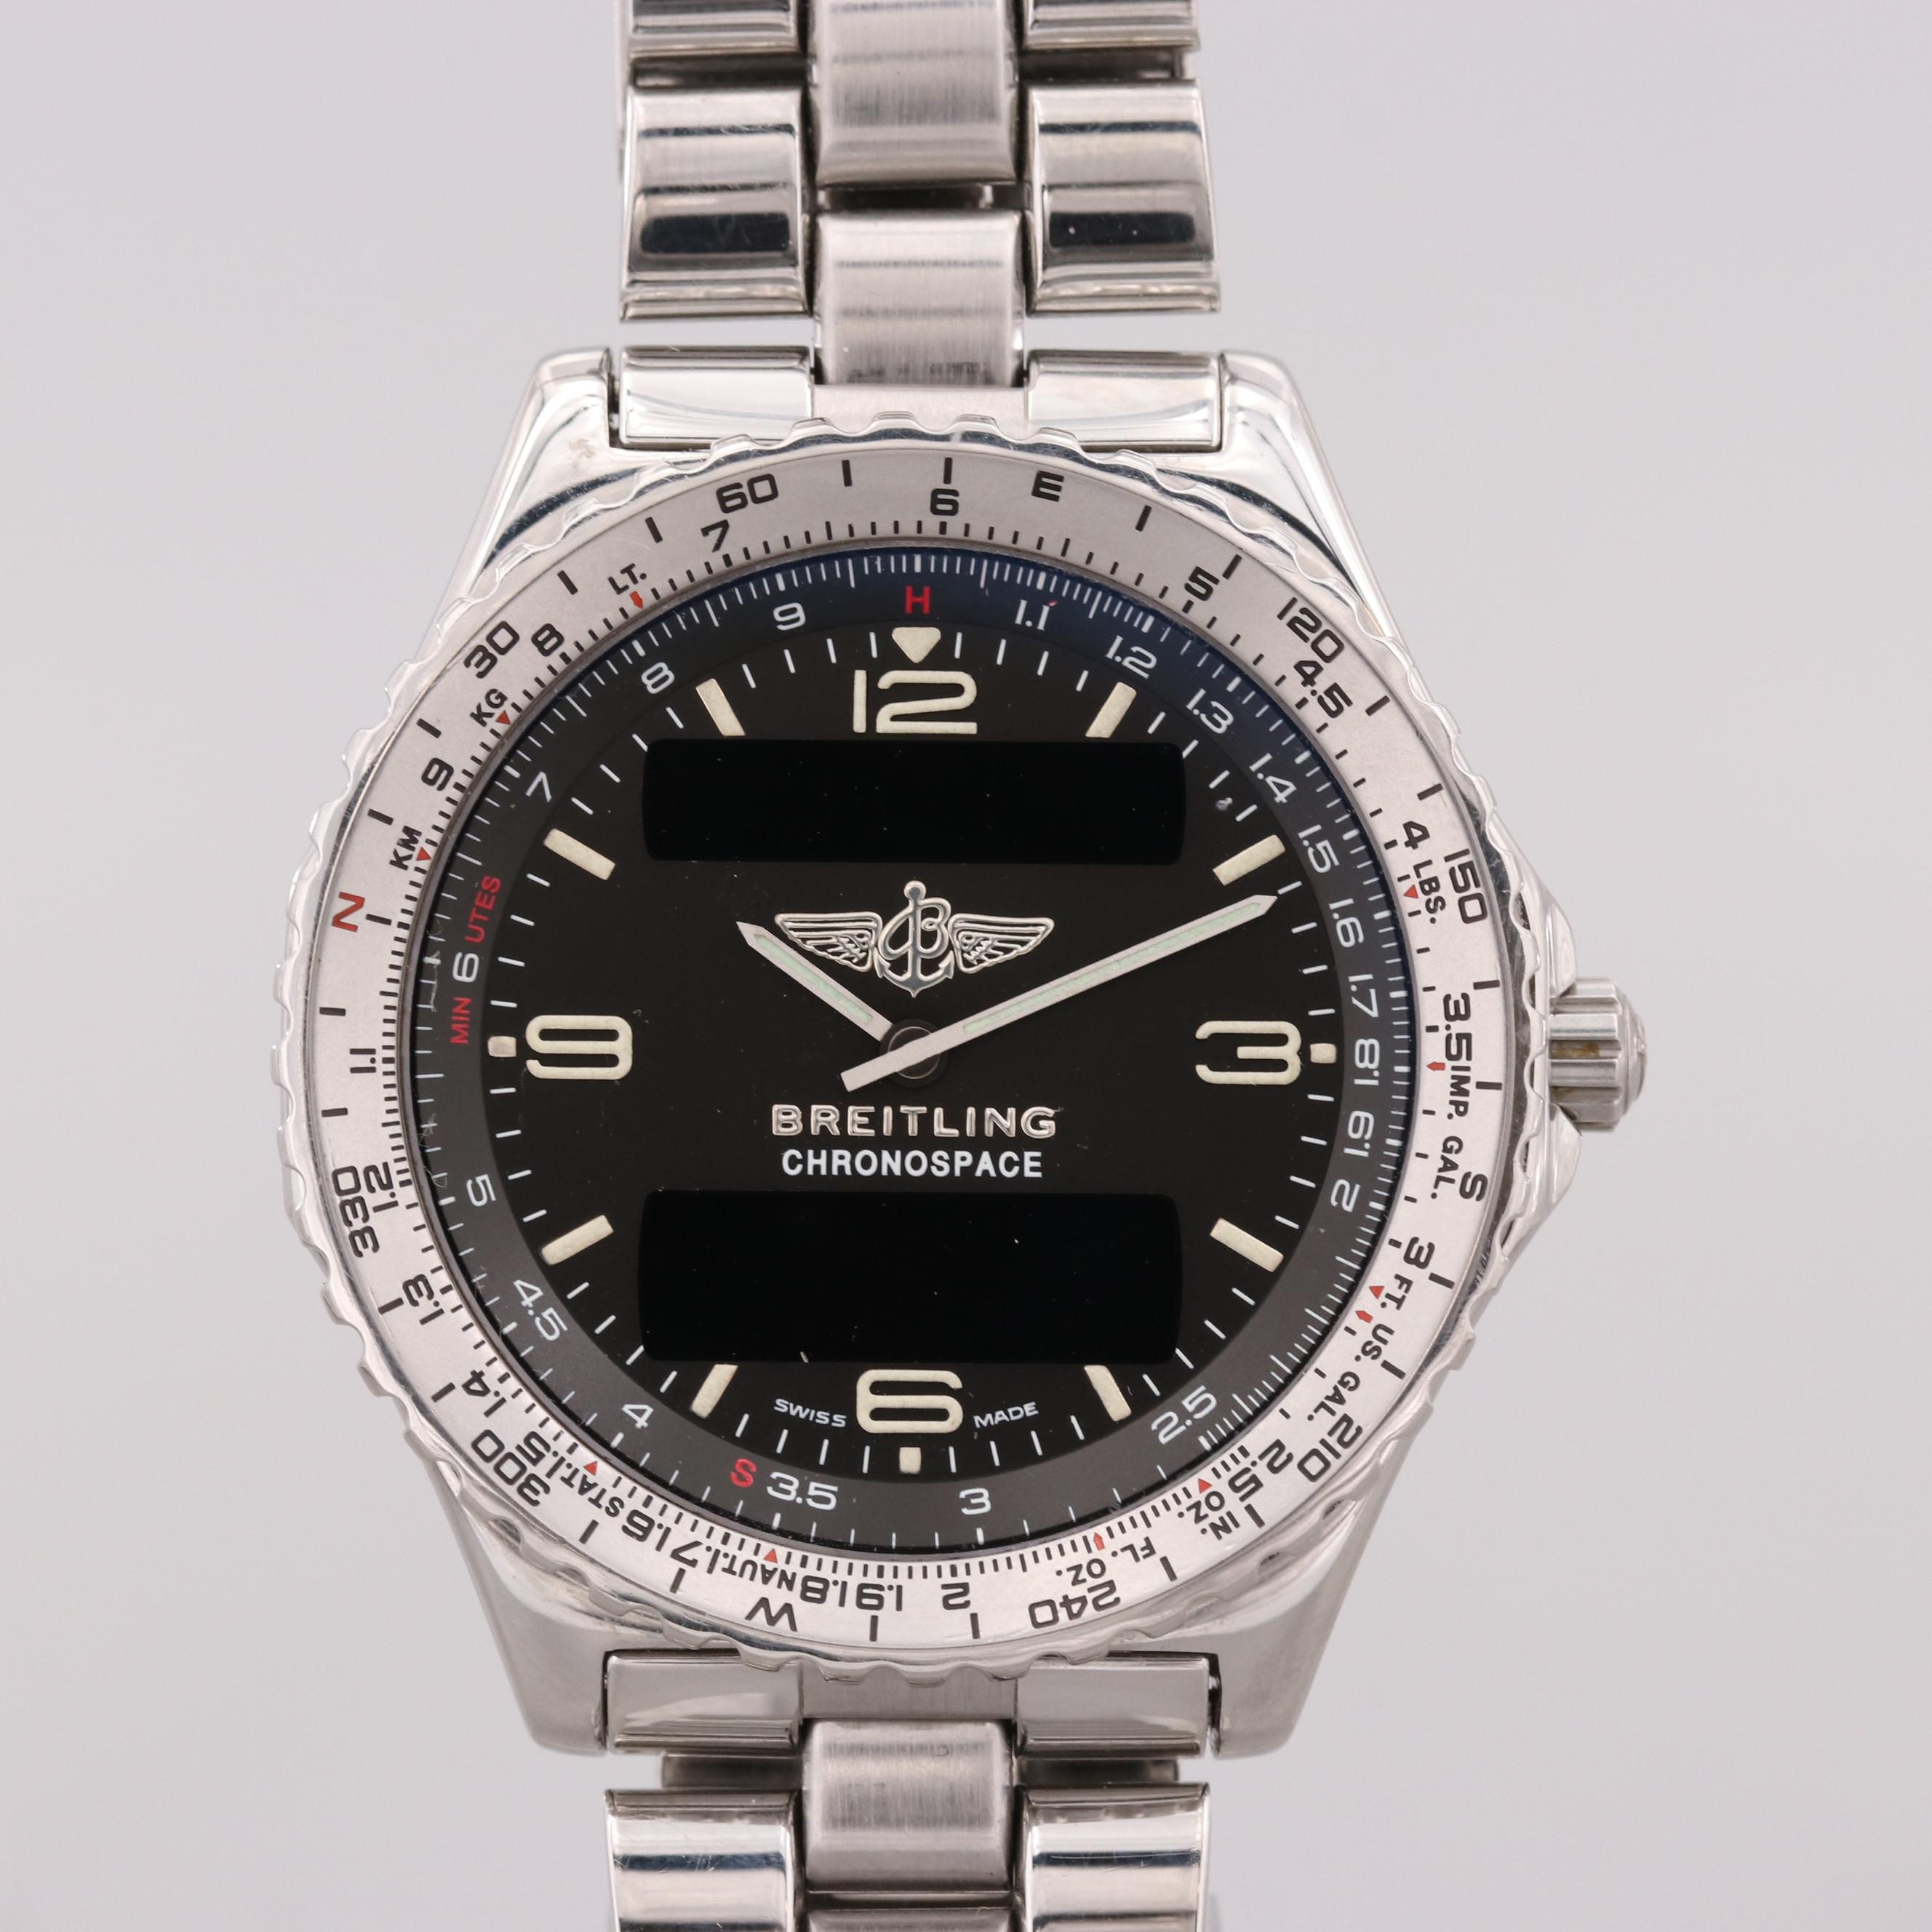 Breitling Chronospace Stainless Steel Analog/Digital Quartz Wristwatch